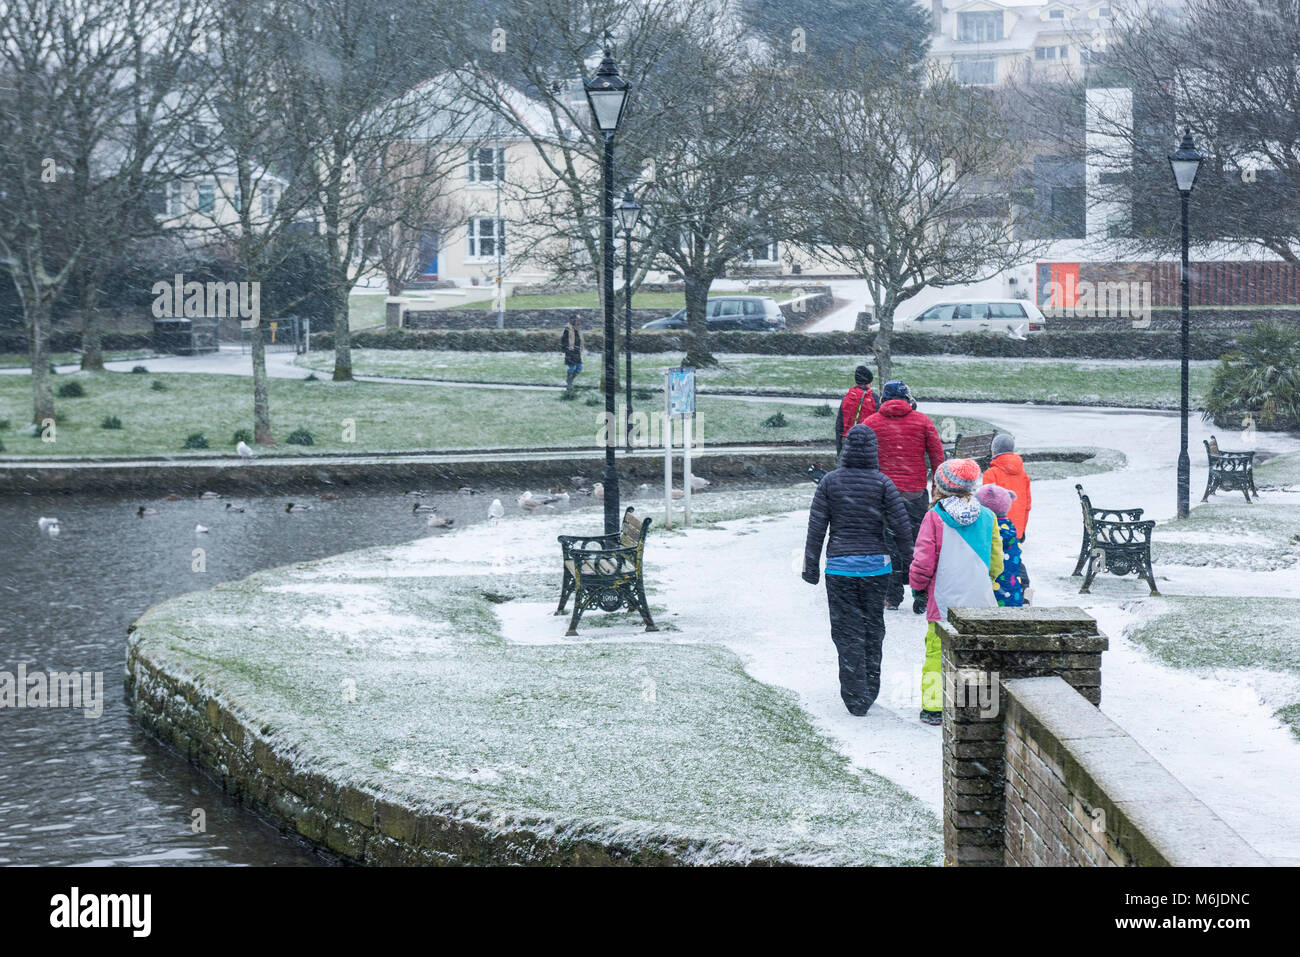 A family wearing brightly coloured clothes during a snow fall in Trenance Gardens in Newquay Cornwall. - Stock Image